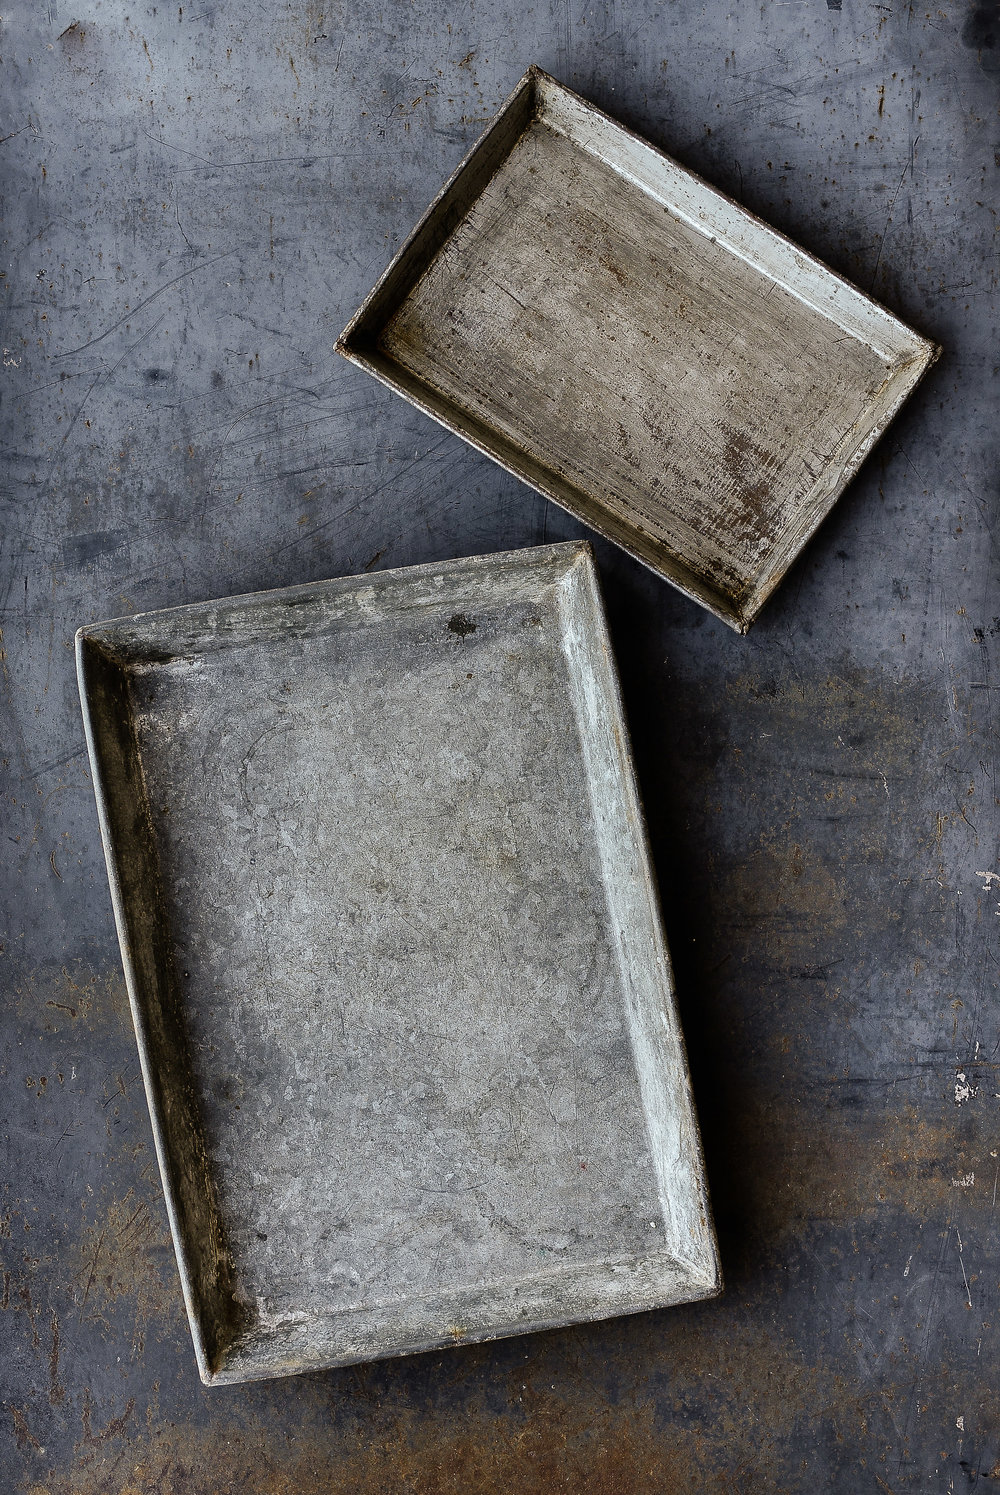 Vintage zinc trays farmhouse decor boxwoodavenue.com